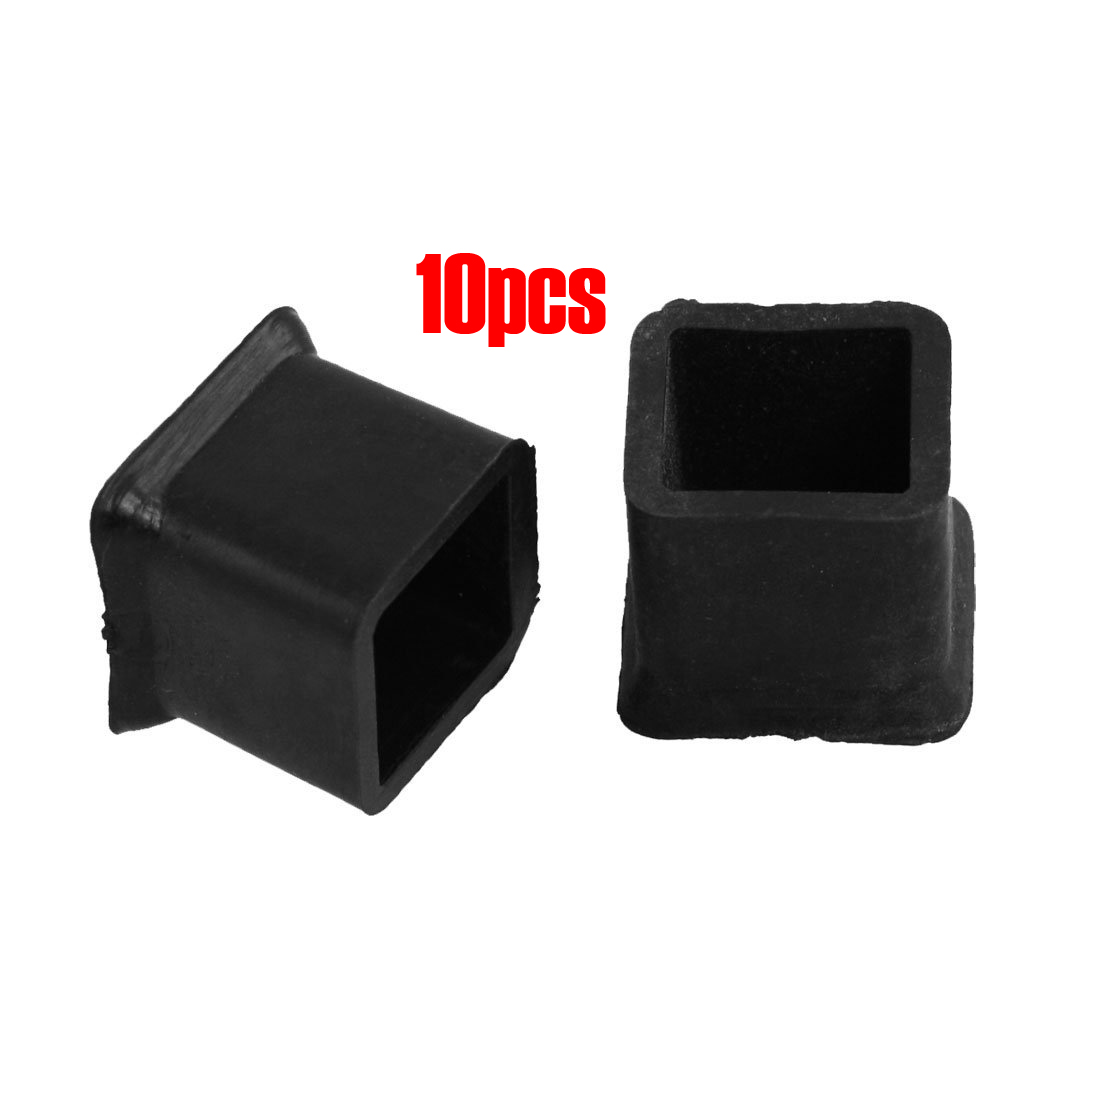 FLST New 10Pcs Furniture Chair Table Leg Rubber Foot Covers Protectors 20mm x 20mm szs hot new 10pcs furniture chair table leg rubber foot covers protectors 20mm x 20mm free shipping